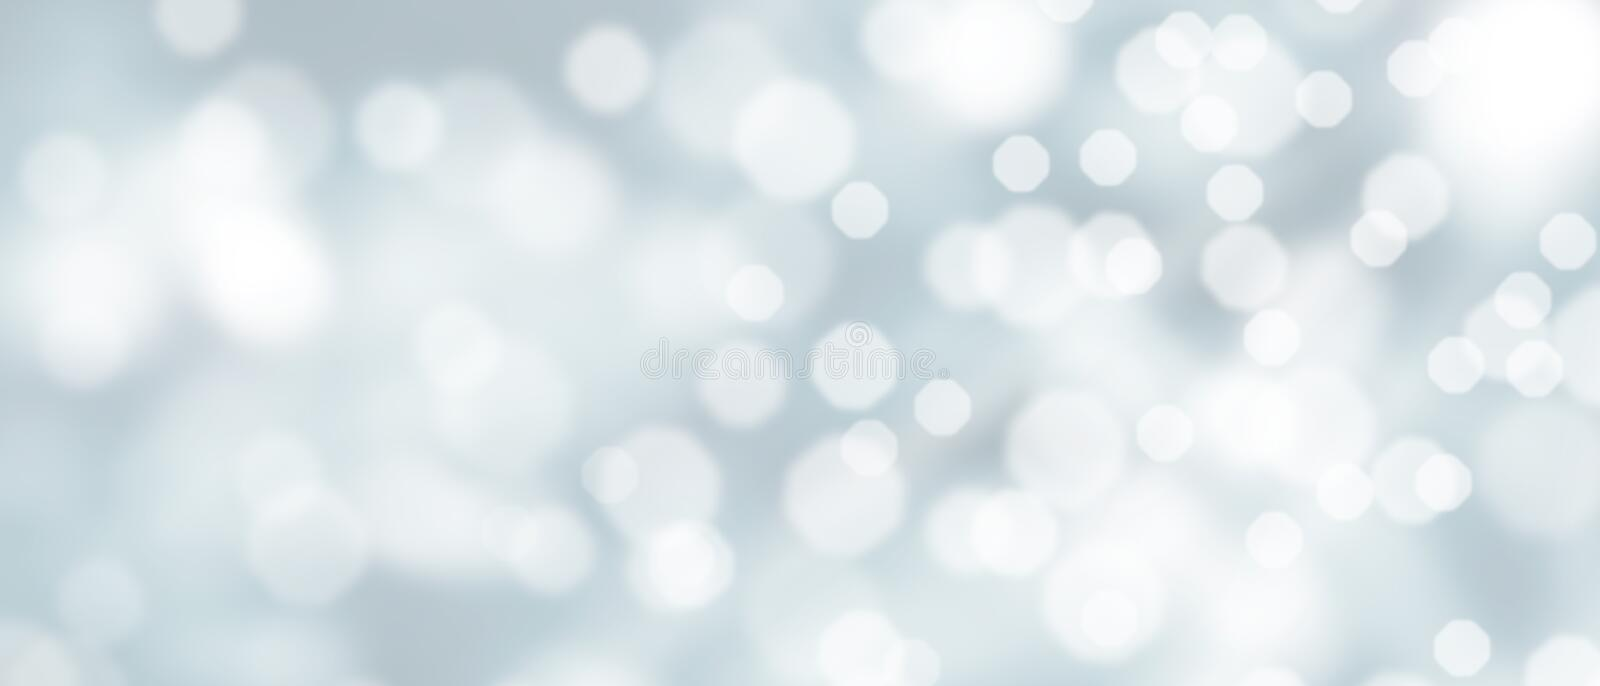 Abstract silver bokeh background royalty free stock photography